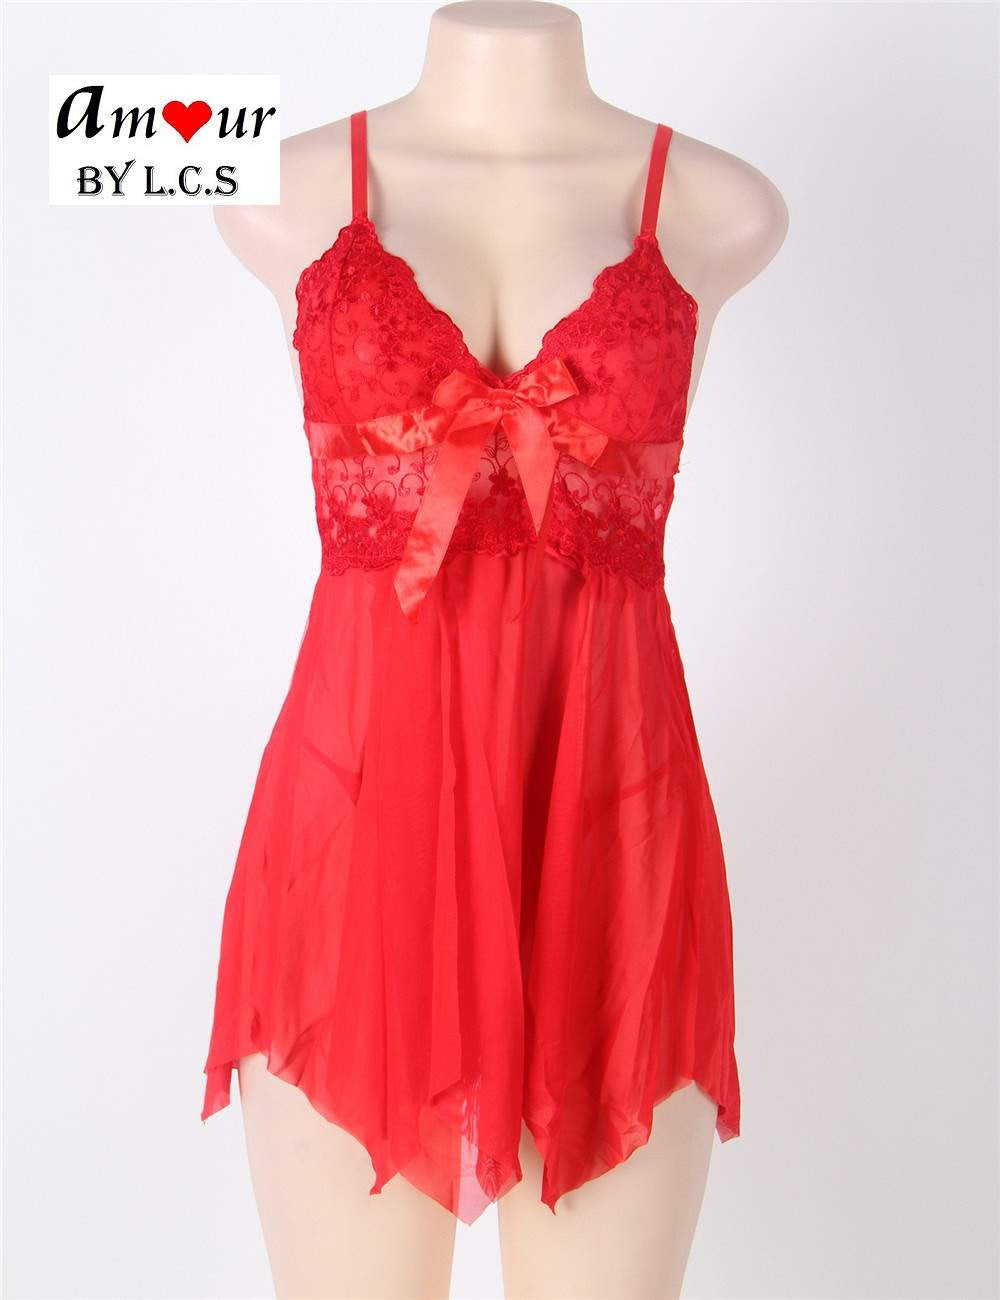 [red lace babydoll on mannikin] - AMOUR Lingerie